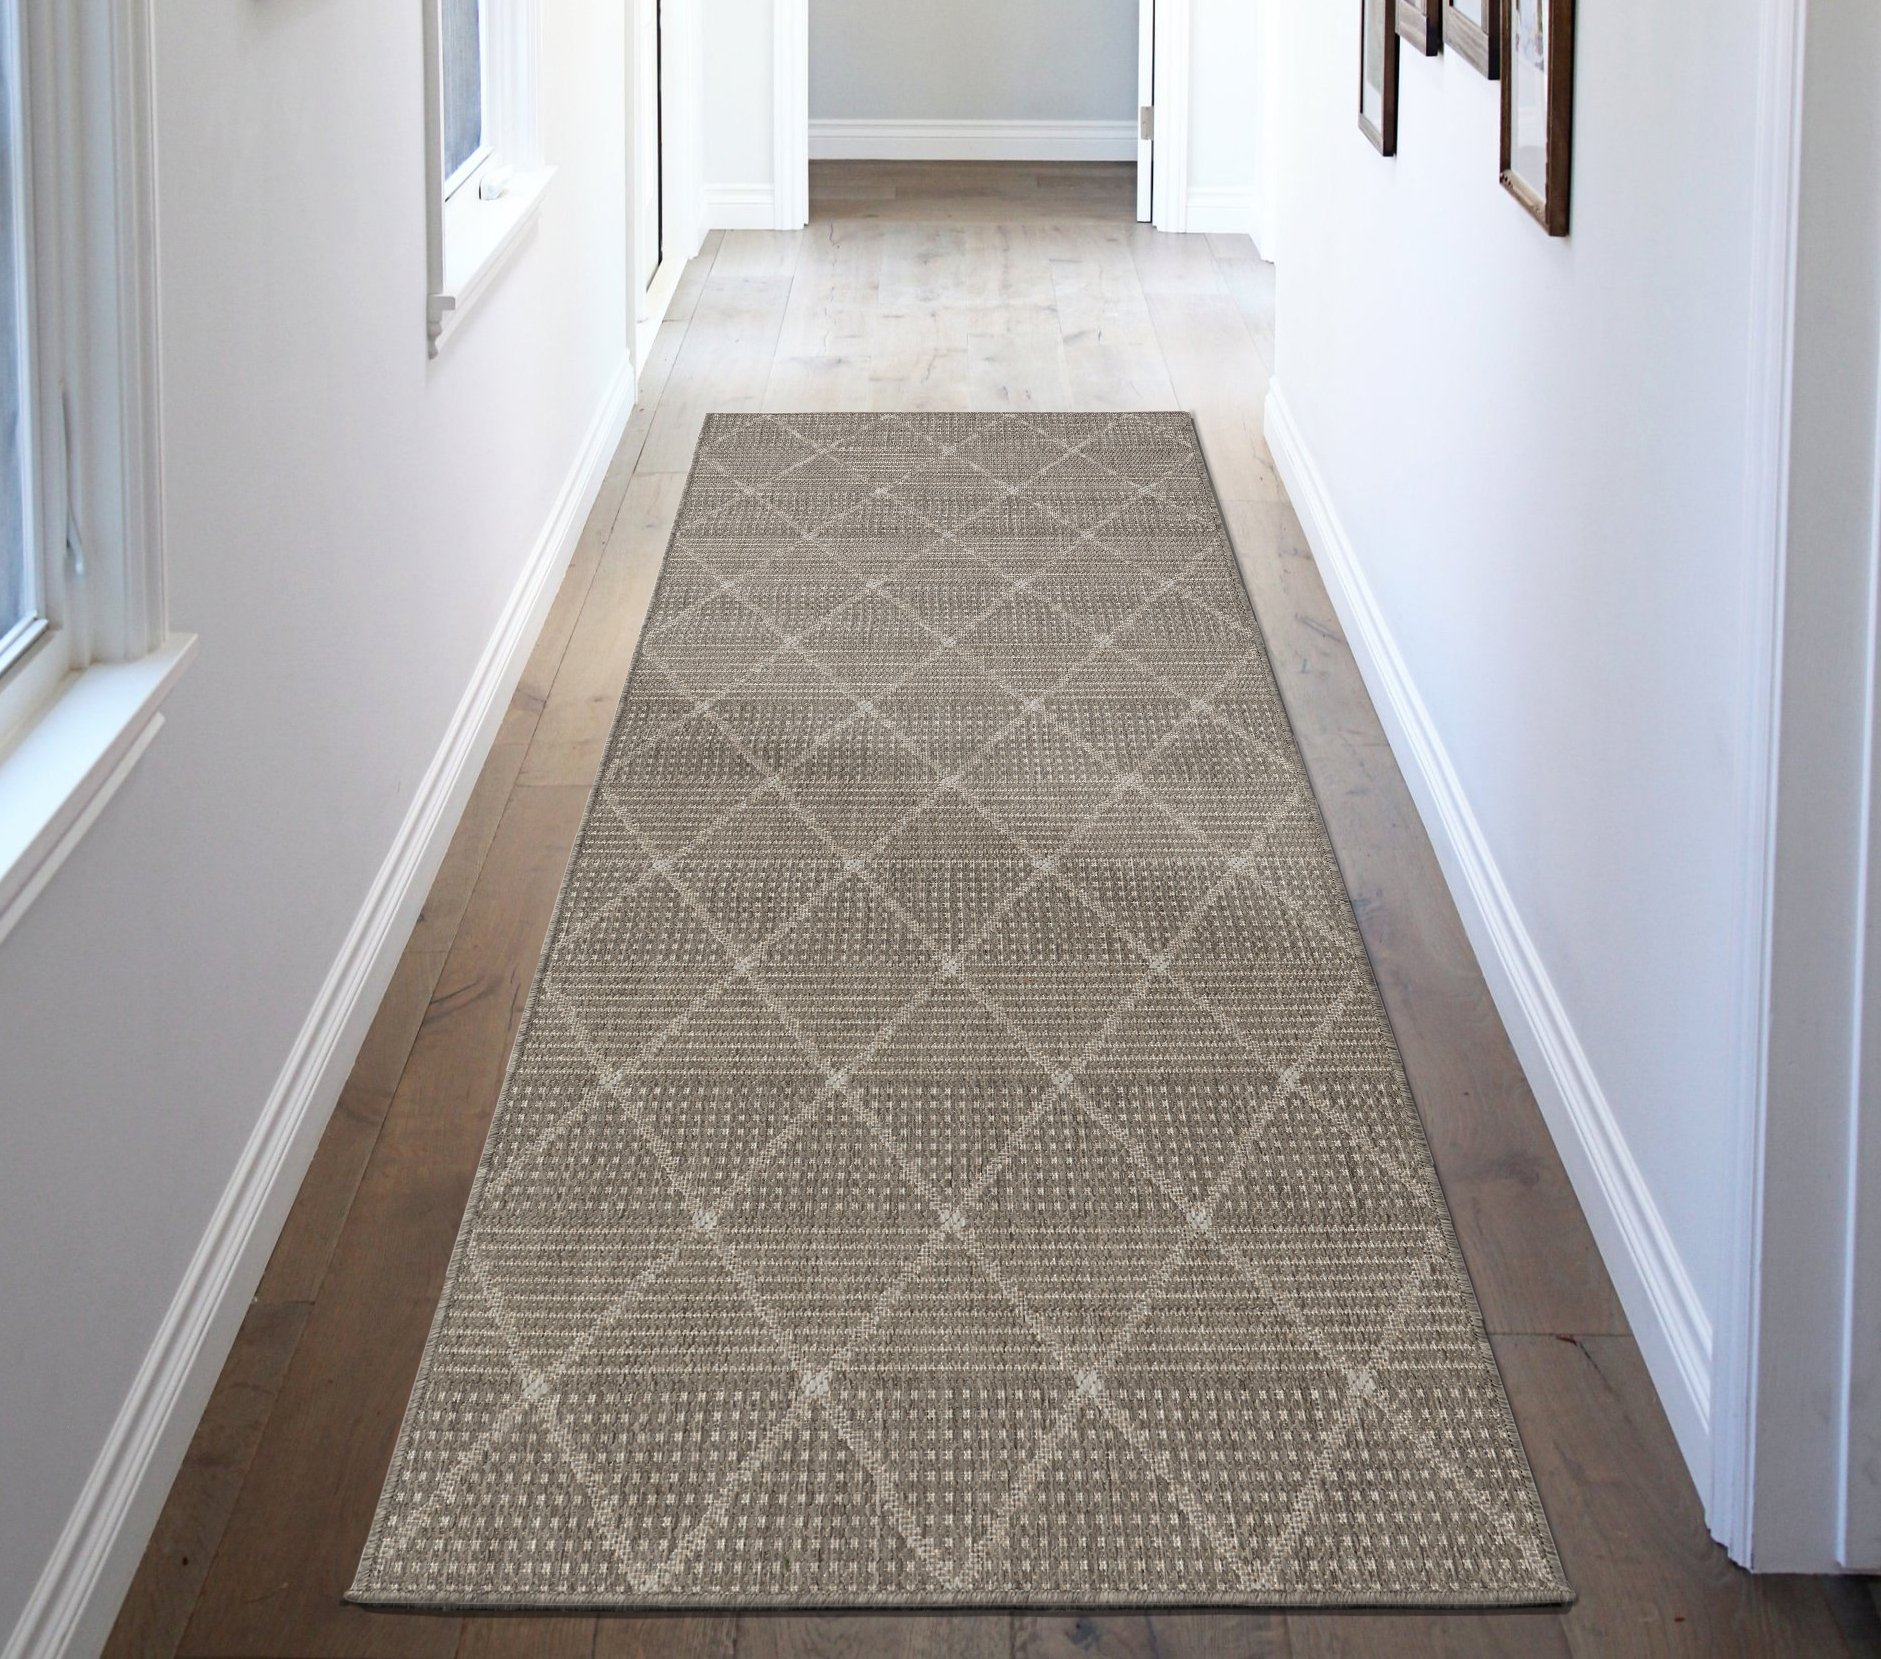 Ottomanson Jardin Collection Contemporary Trellis Design Indoor/Outdoor Jute Backing Synthetic Sisal Runner Rug, 2'7'' x 7'0'', Grey by Ottomanson